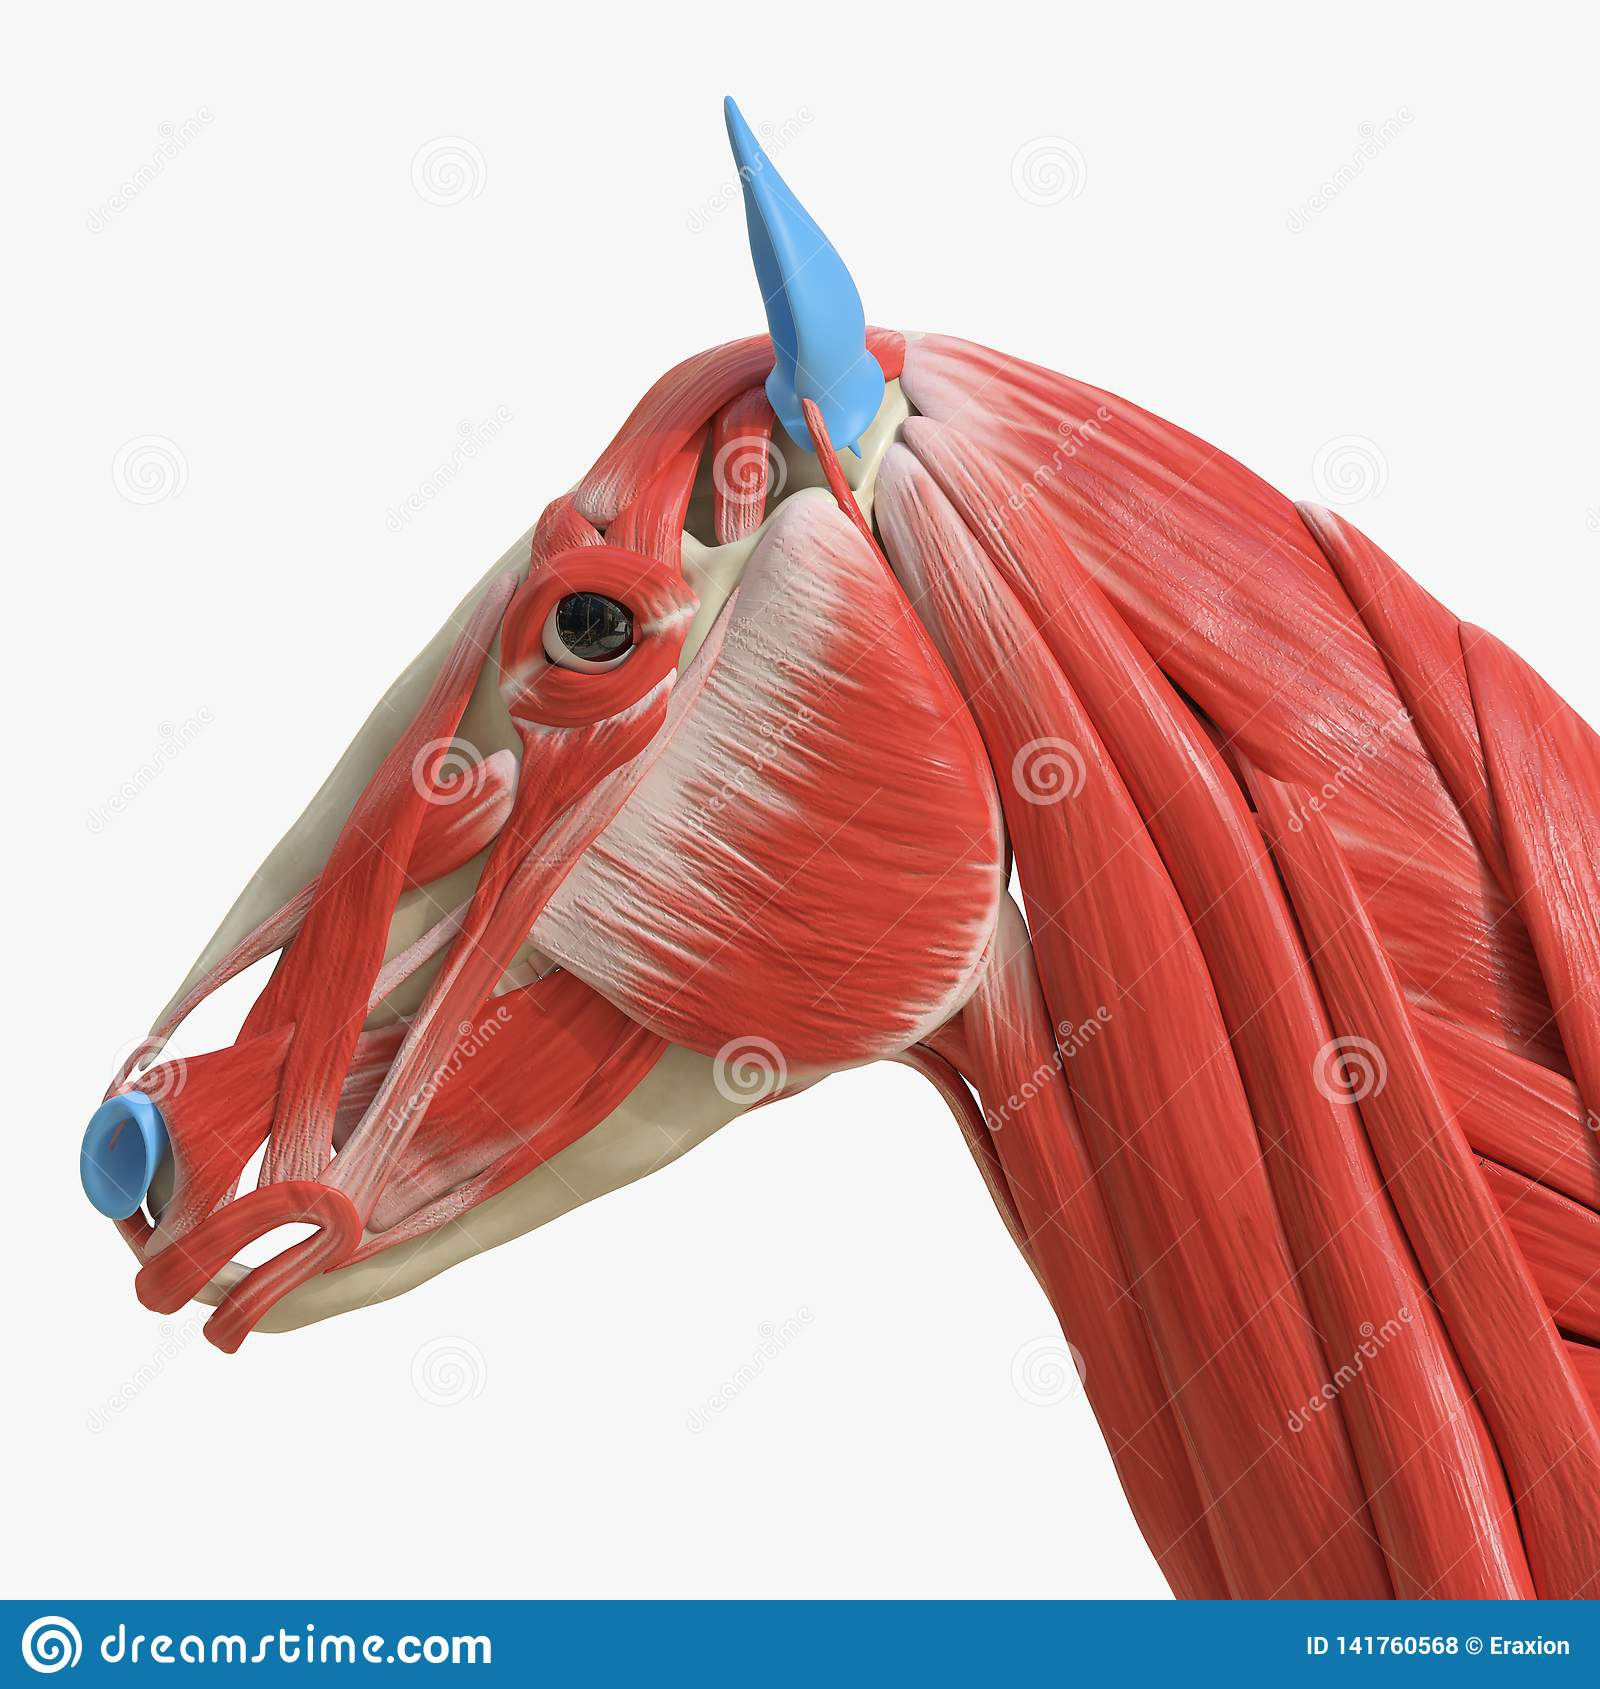 Horse Anatomy Muscles Stock Illustrations 56 Horse Anatomy Muscles Stock Illustrations Vectors Clipart Dreamstime